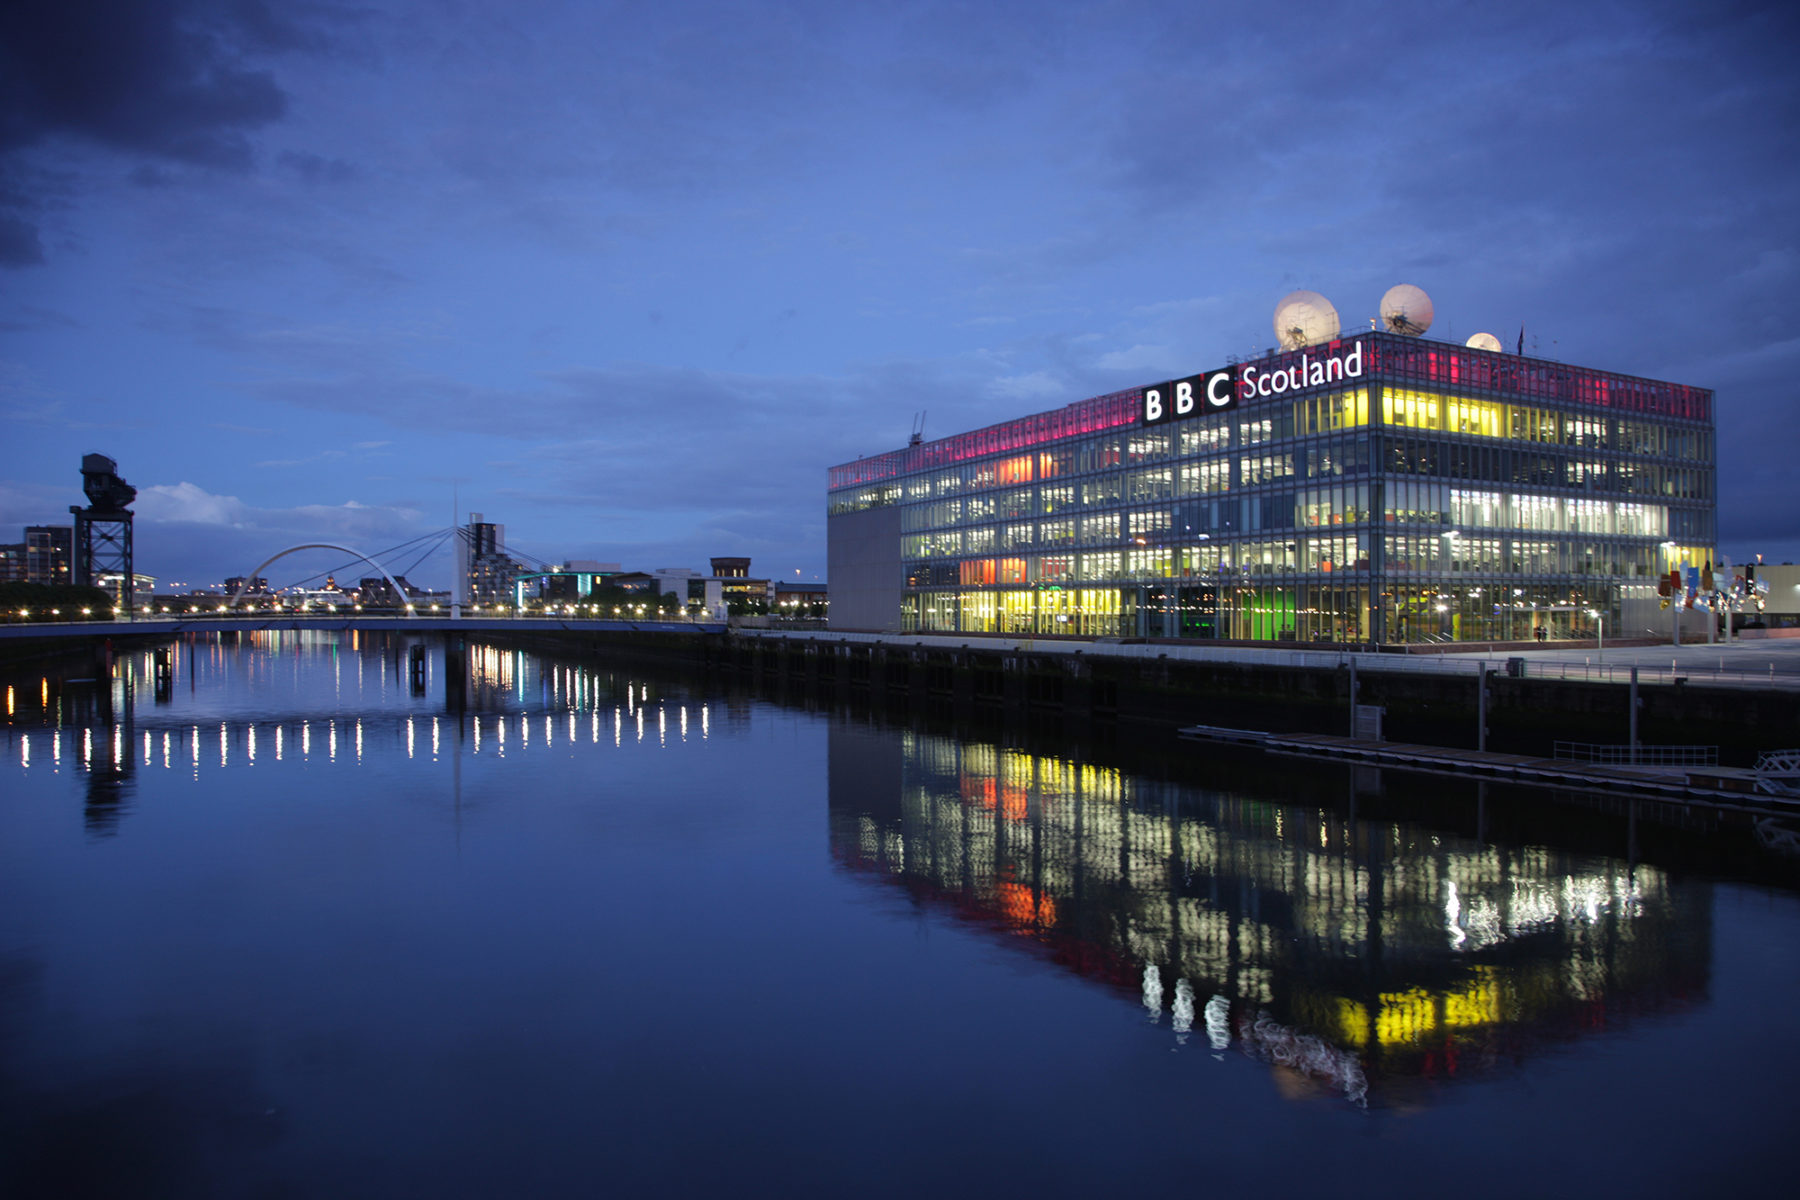 BBC Scotland, Pacific Quay | by McAteer Photograph